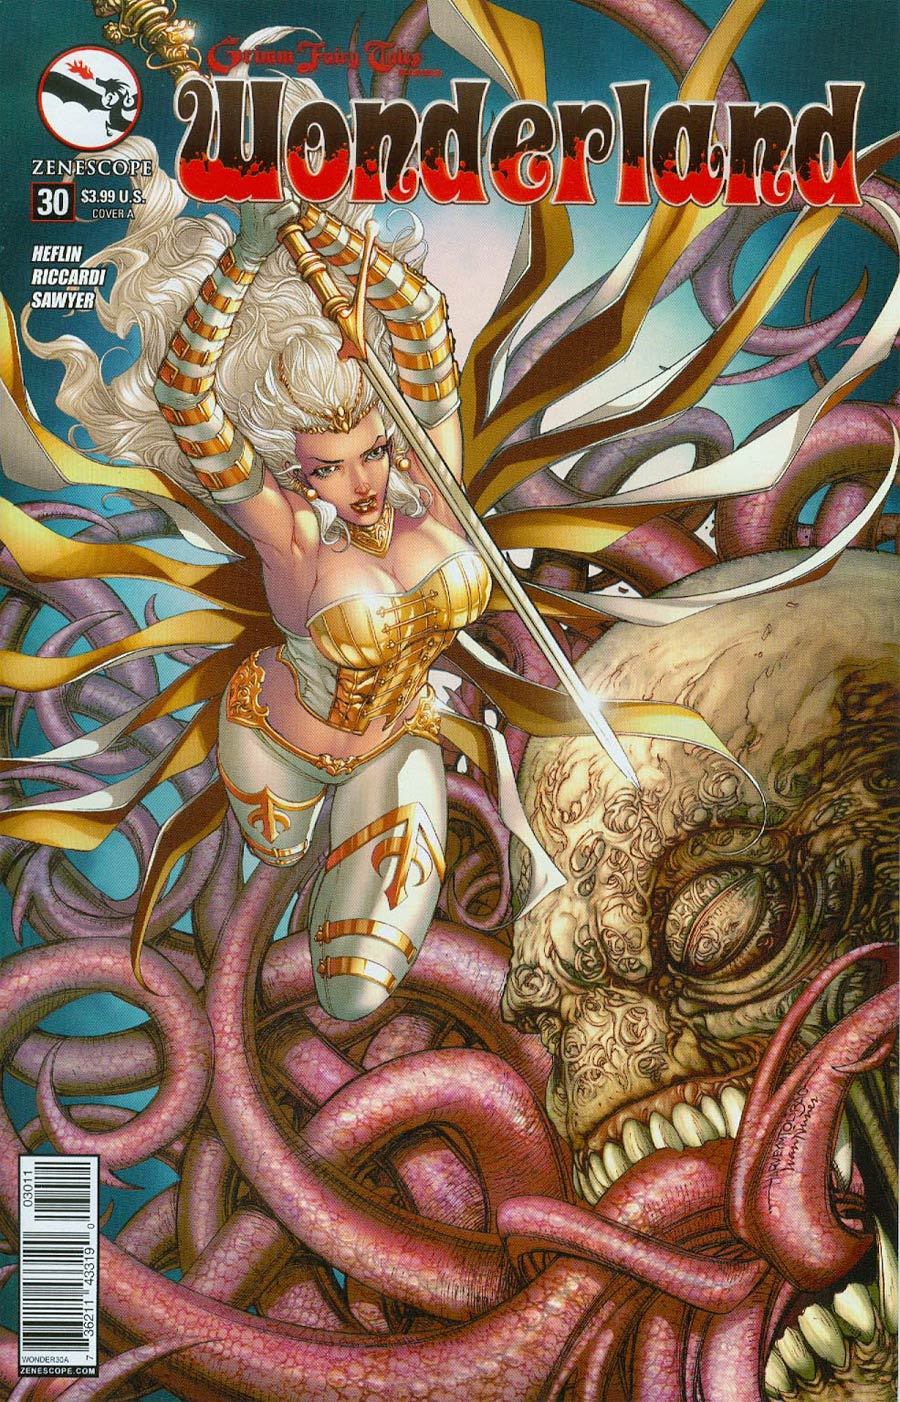 Grimm Fairy Tales Presents Wonderland Vol 2 #30 Cover A Harvey Tolibao